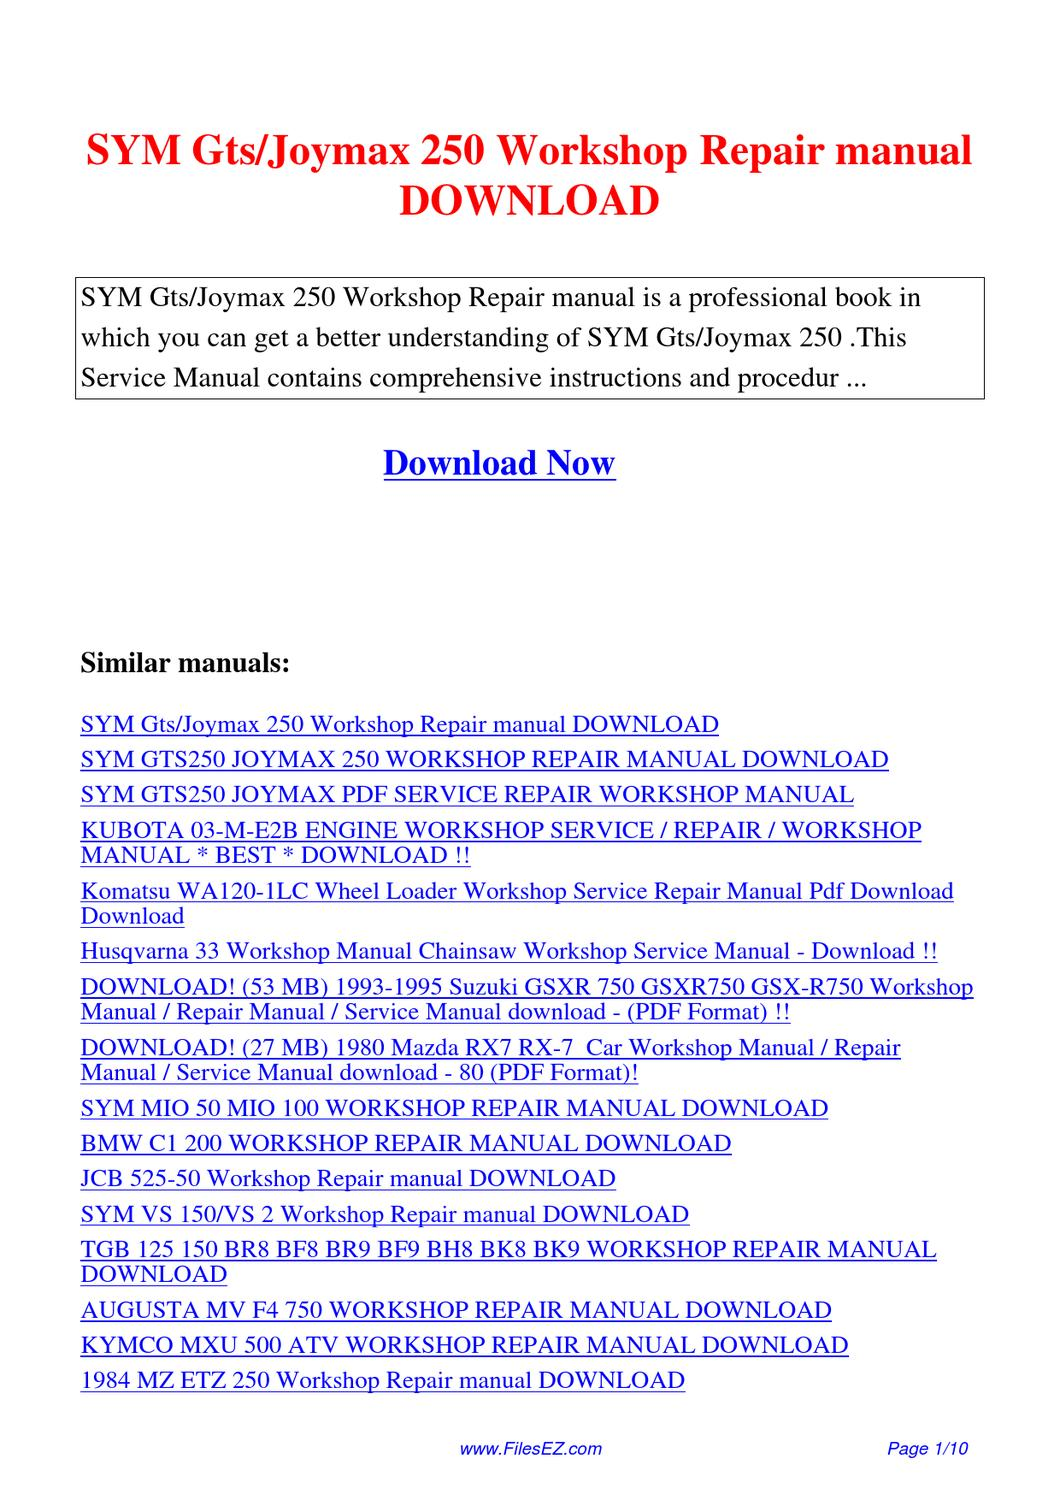 sym gts joymax 250 workshop repair manual by yang rong